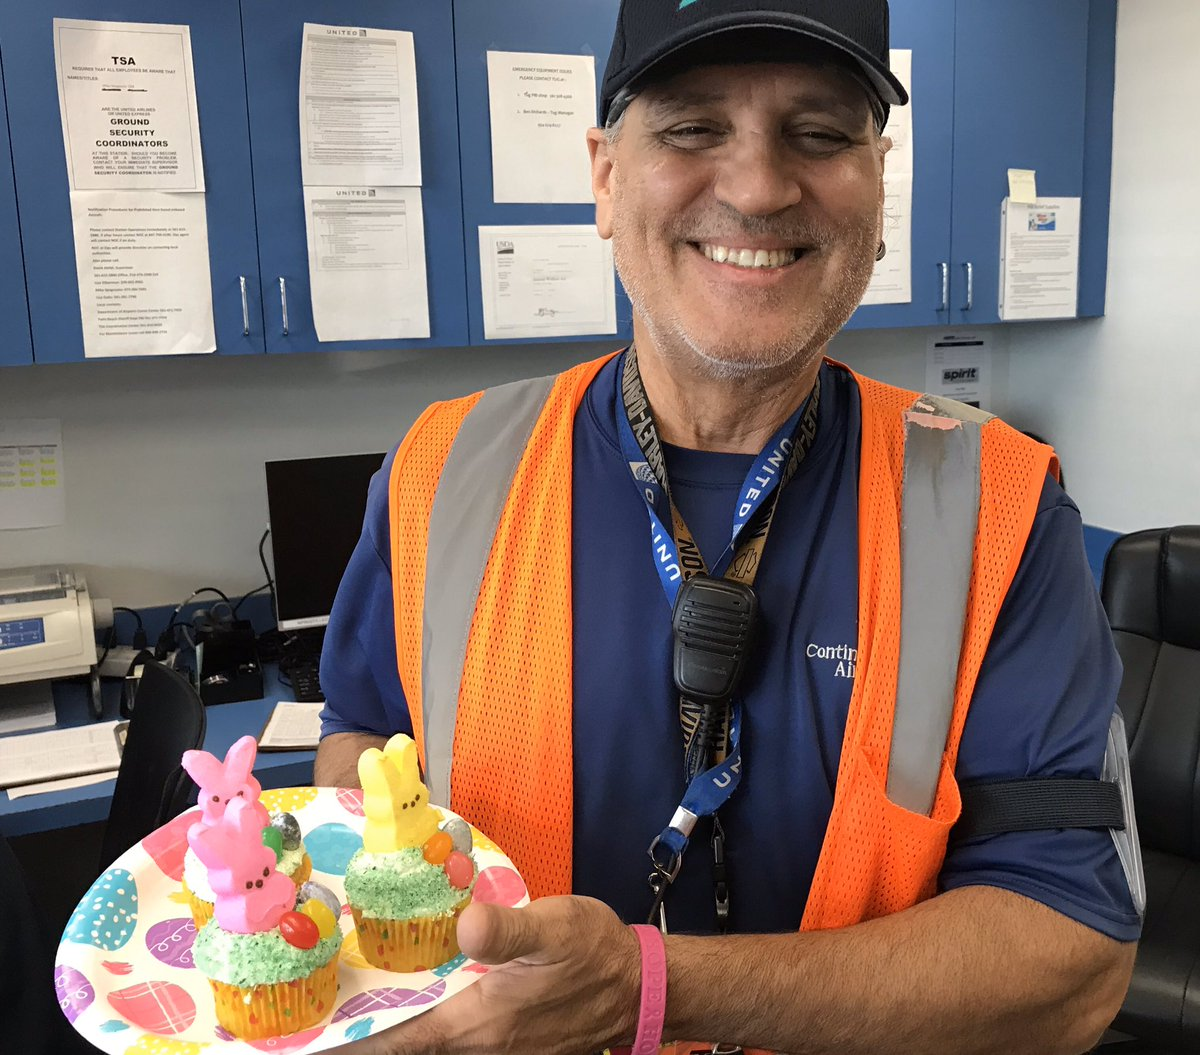 The Easter Bunny knows, the PBI Team is the best peeps the business. Delivering core4-Every Customer, Every Flight, Everyday! From our PBI United family to yours, wishing you a healthy and happy Easter! @auggiie69 @LouFarinaccio @weareunited @flyPBI #whyiloveao #WinningTheLines